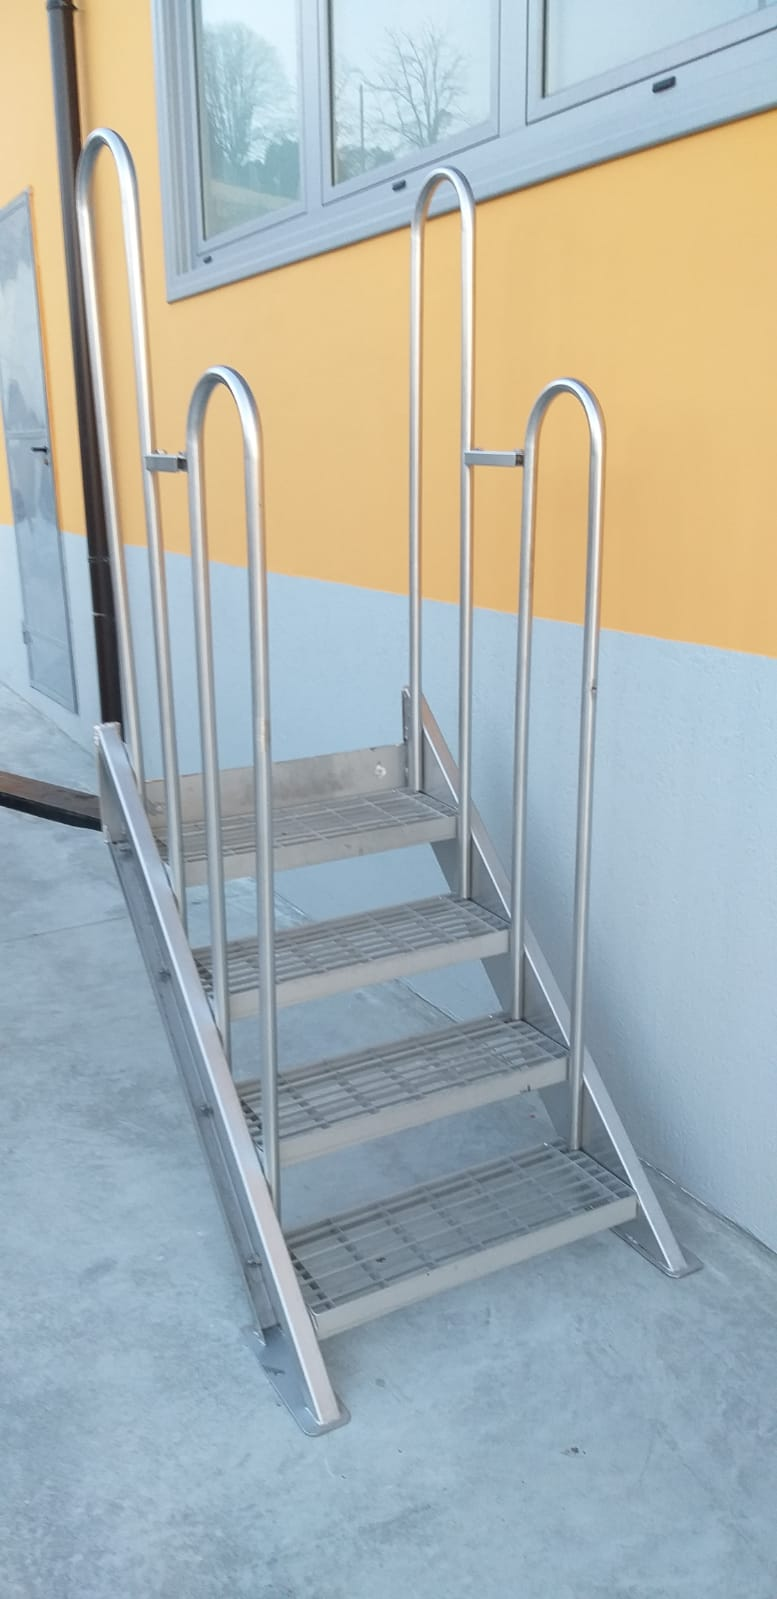 STAINLESS STEEL LADDER WITH FOUR STEPS, SECOND-HAND EQUIPMENT.